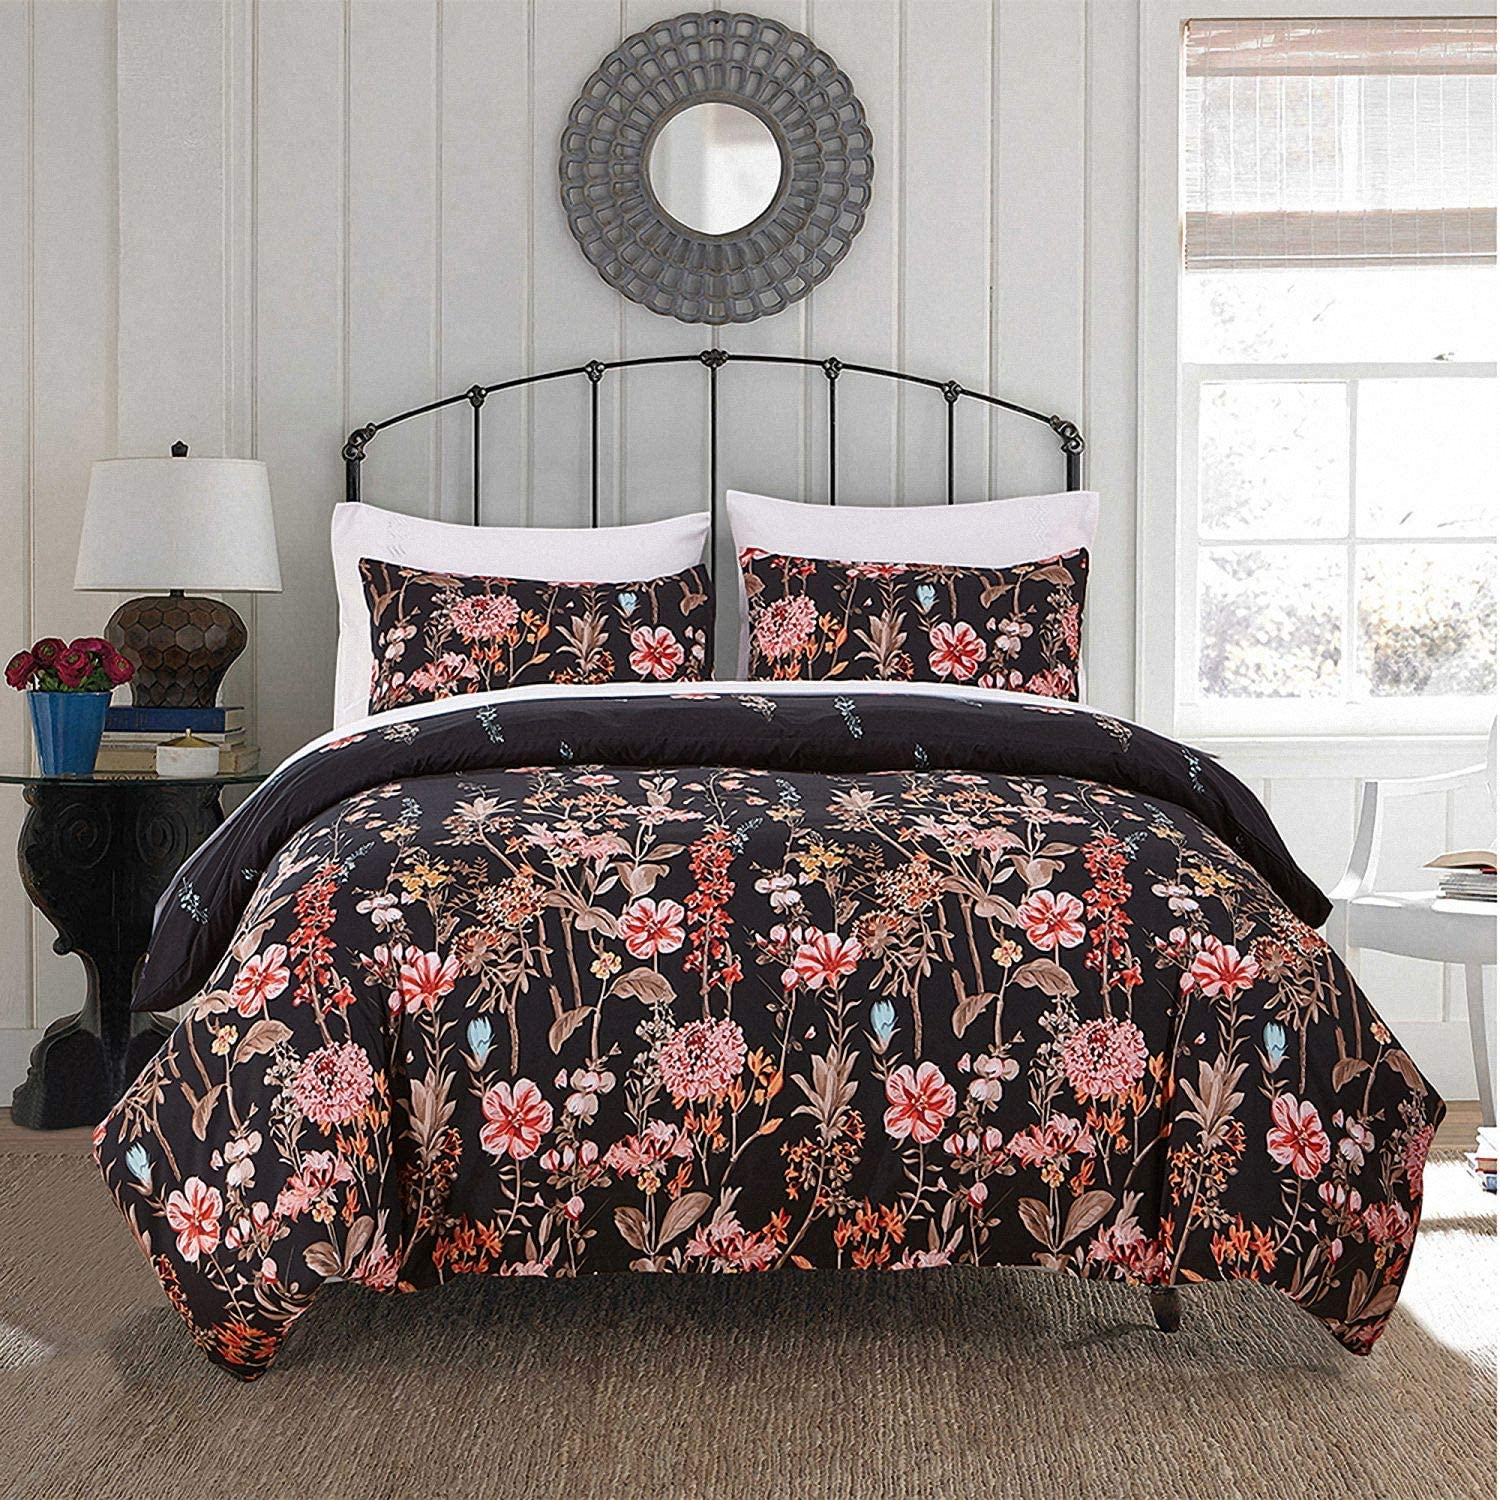 NEWLAKE Duvet Covet Set-3 Pieces Comforter Cover Sets (1 Duvet Cover + 2 Pillow Shams),Queen Size,Sweet Garden Pattern